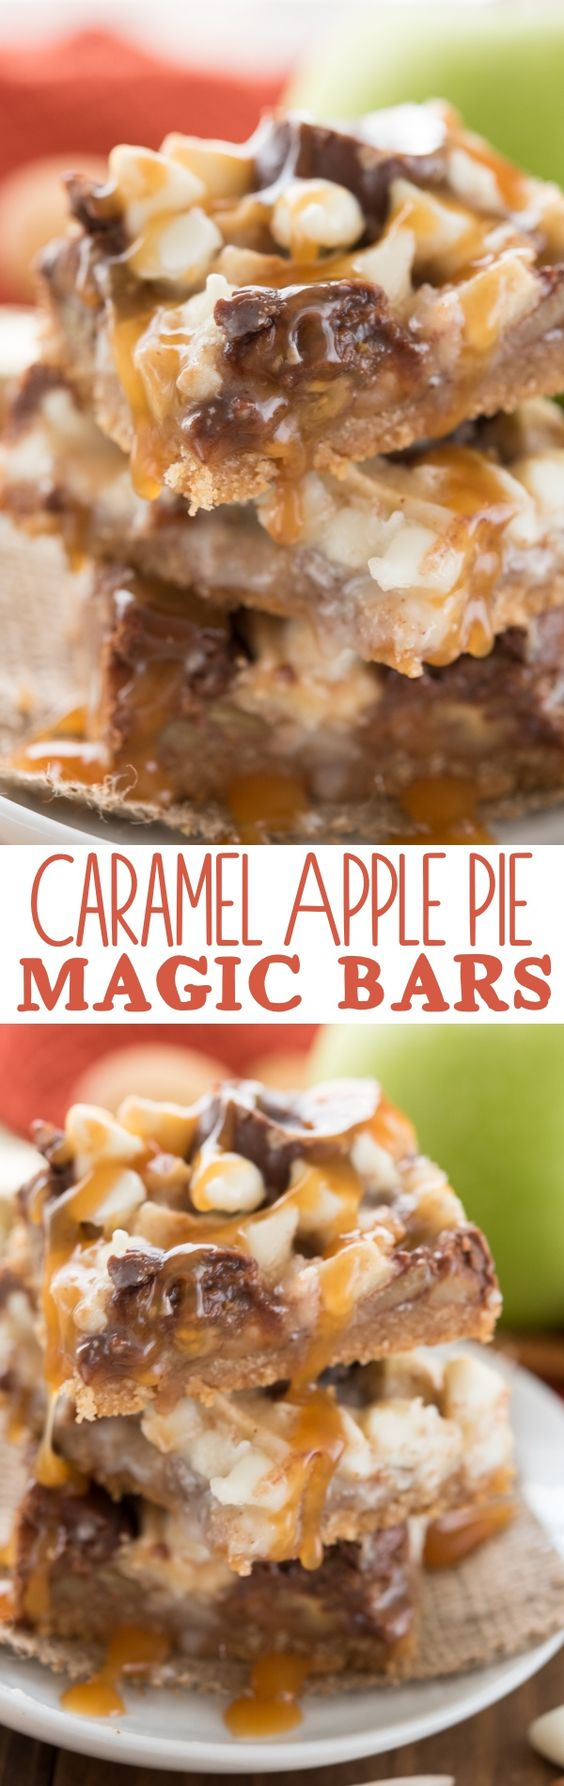 These are so easy to make and they're even better than apple pie! Nilla wafers, Rolos, apples - delicious! Caramel Apple Pie Magic Bars Recipe | Crazy for Crust #falldesserts #winterdesserts #christmasdesserts #thanksgivingdesserts #partydesserts #holidaydesserts #cinnamondesserts #carameldesserts #appledesserts